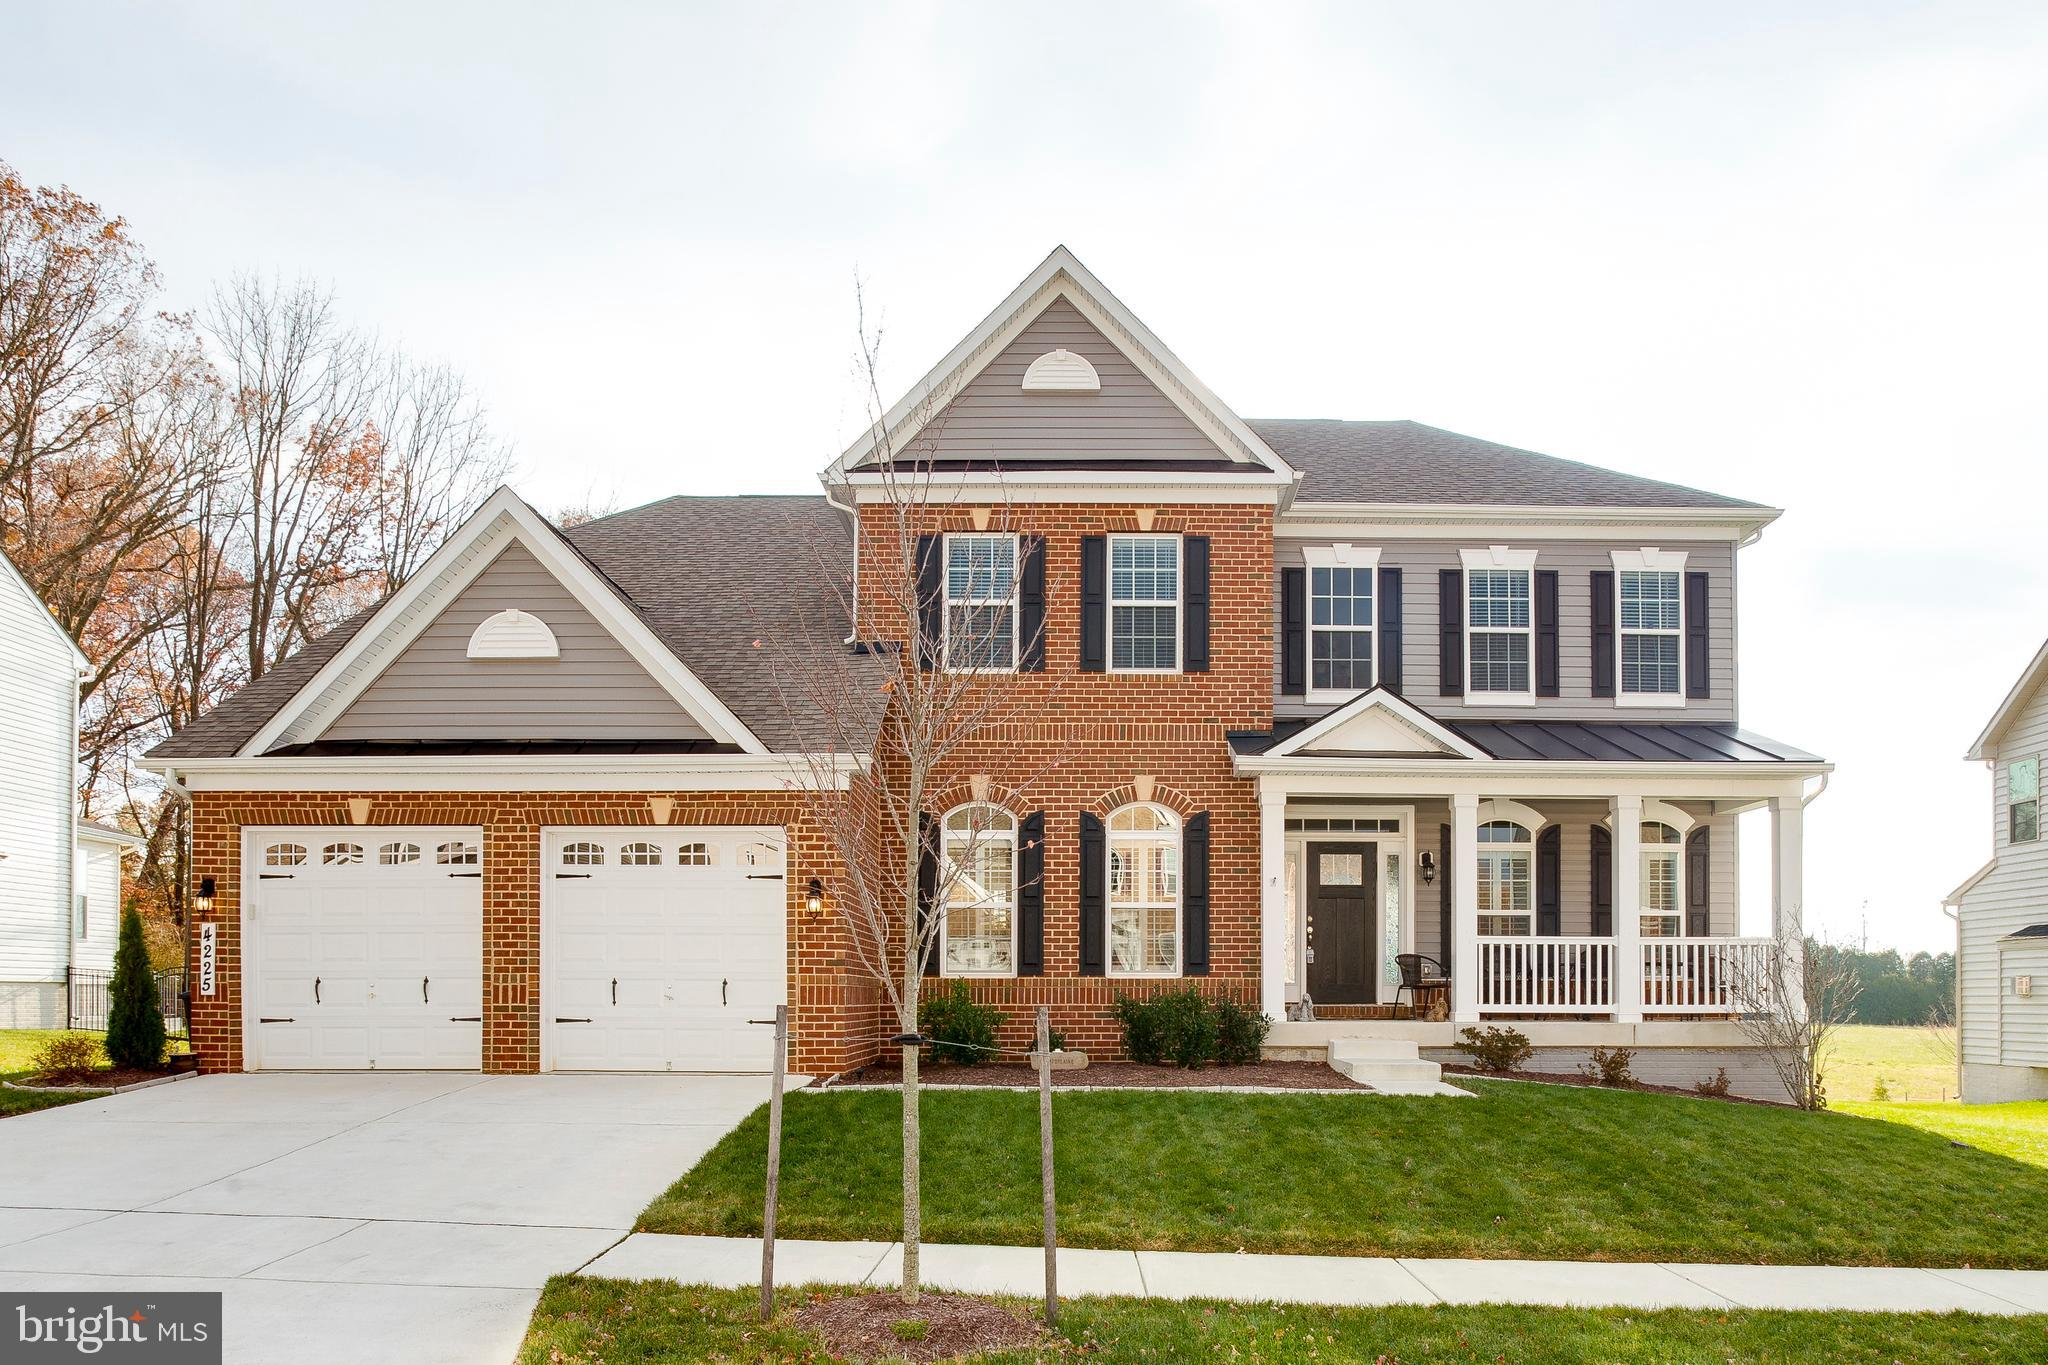 4225 PERRY HALL ROAD, PERRY HALL, MD 21128